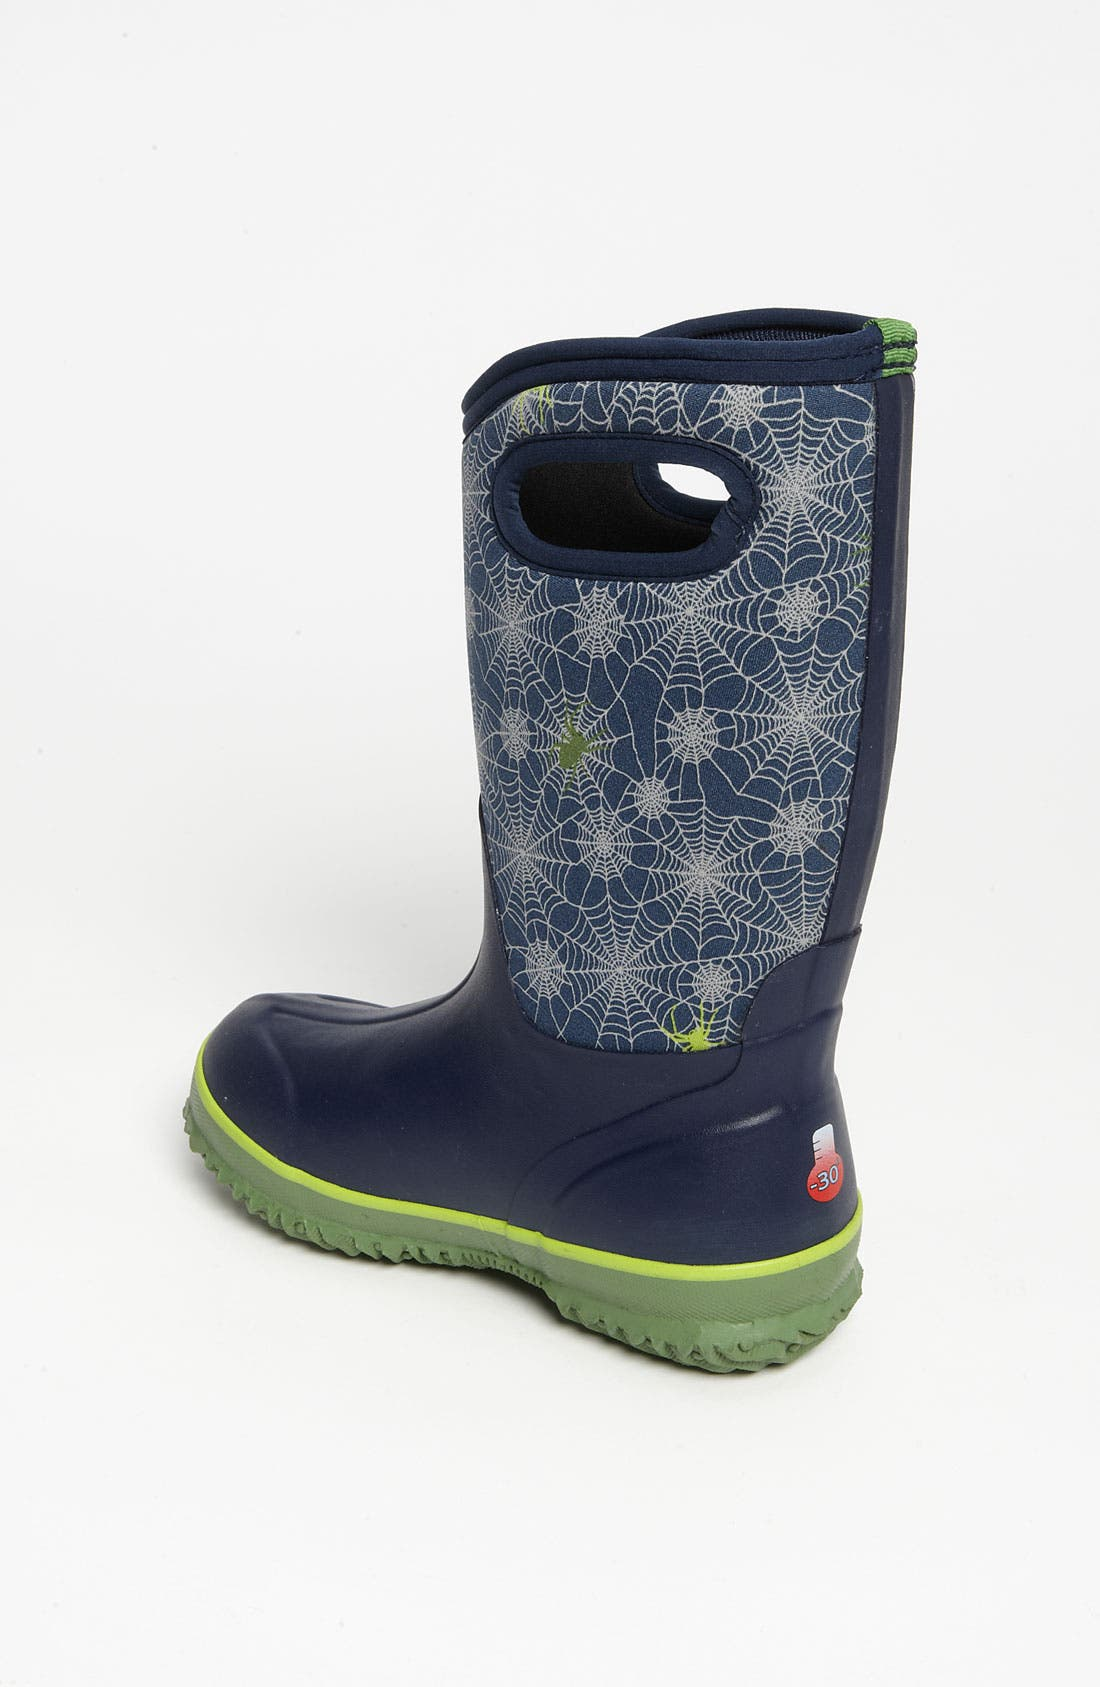 Alternate Image 2  - Bogs 'Classic High - Spider' Waterproof Boot (Toddler, Little Kid & Big Kid)